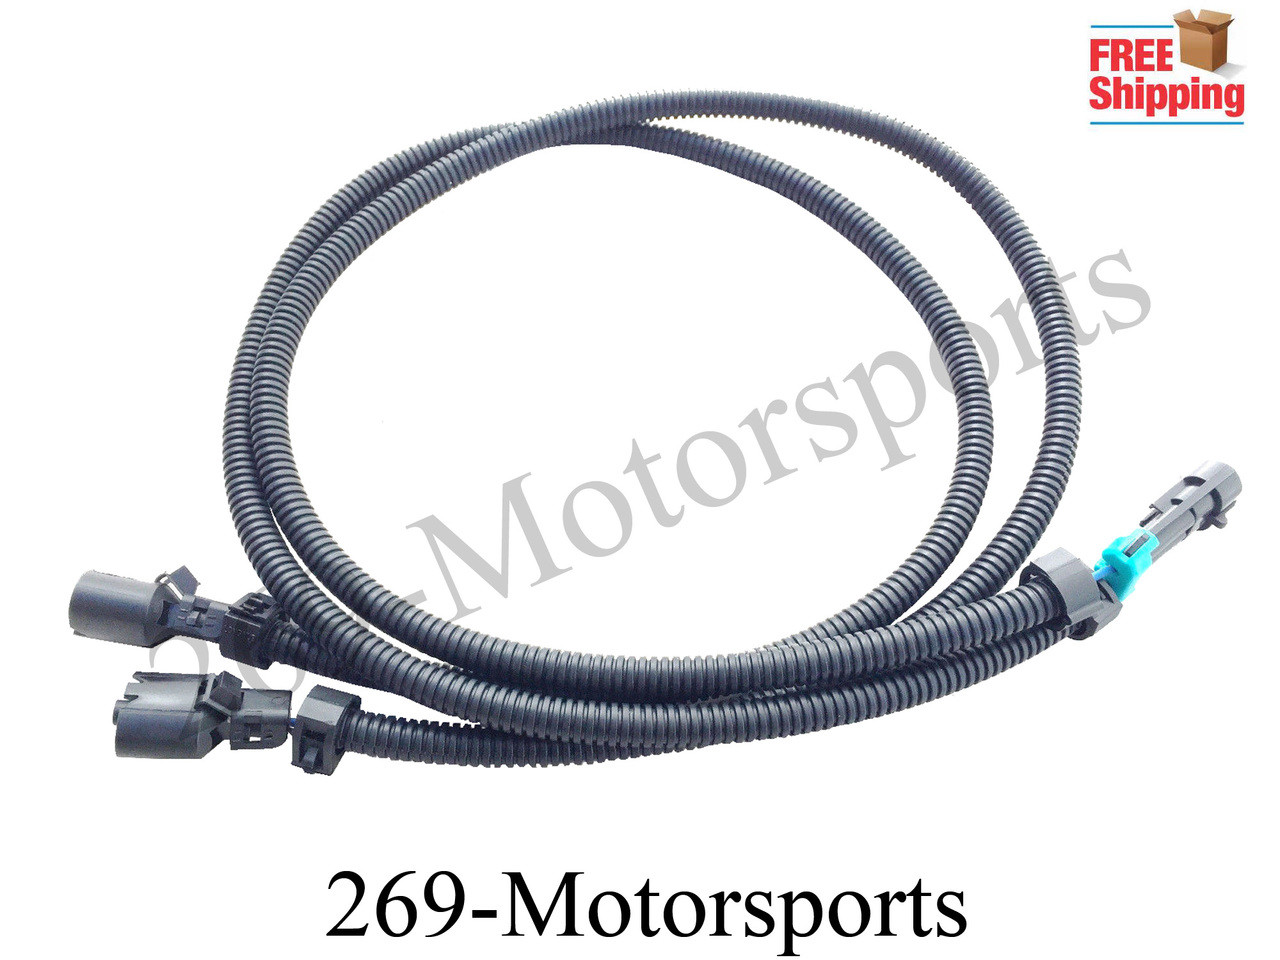 medium resolution of knock sensor extension wiring harness for ls1 ls6 to ls2 conversion adapter gm